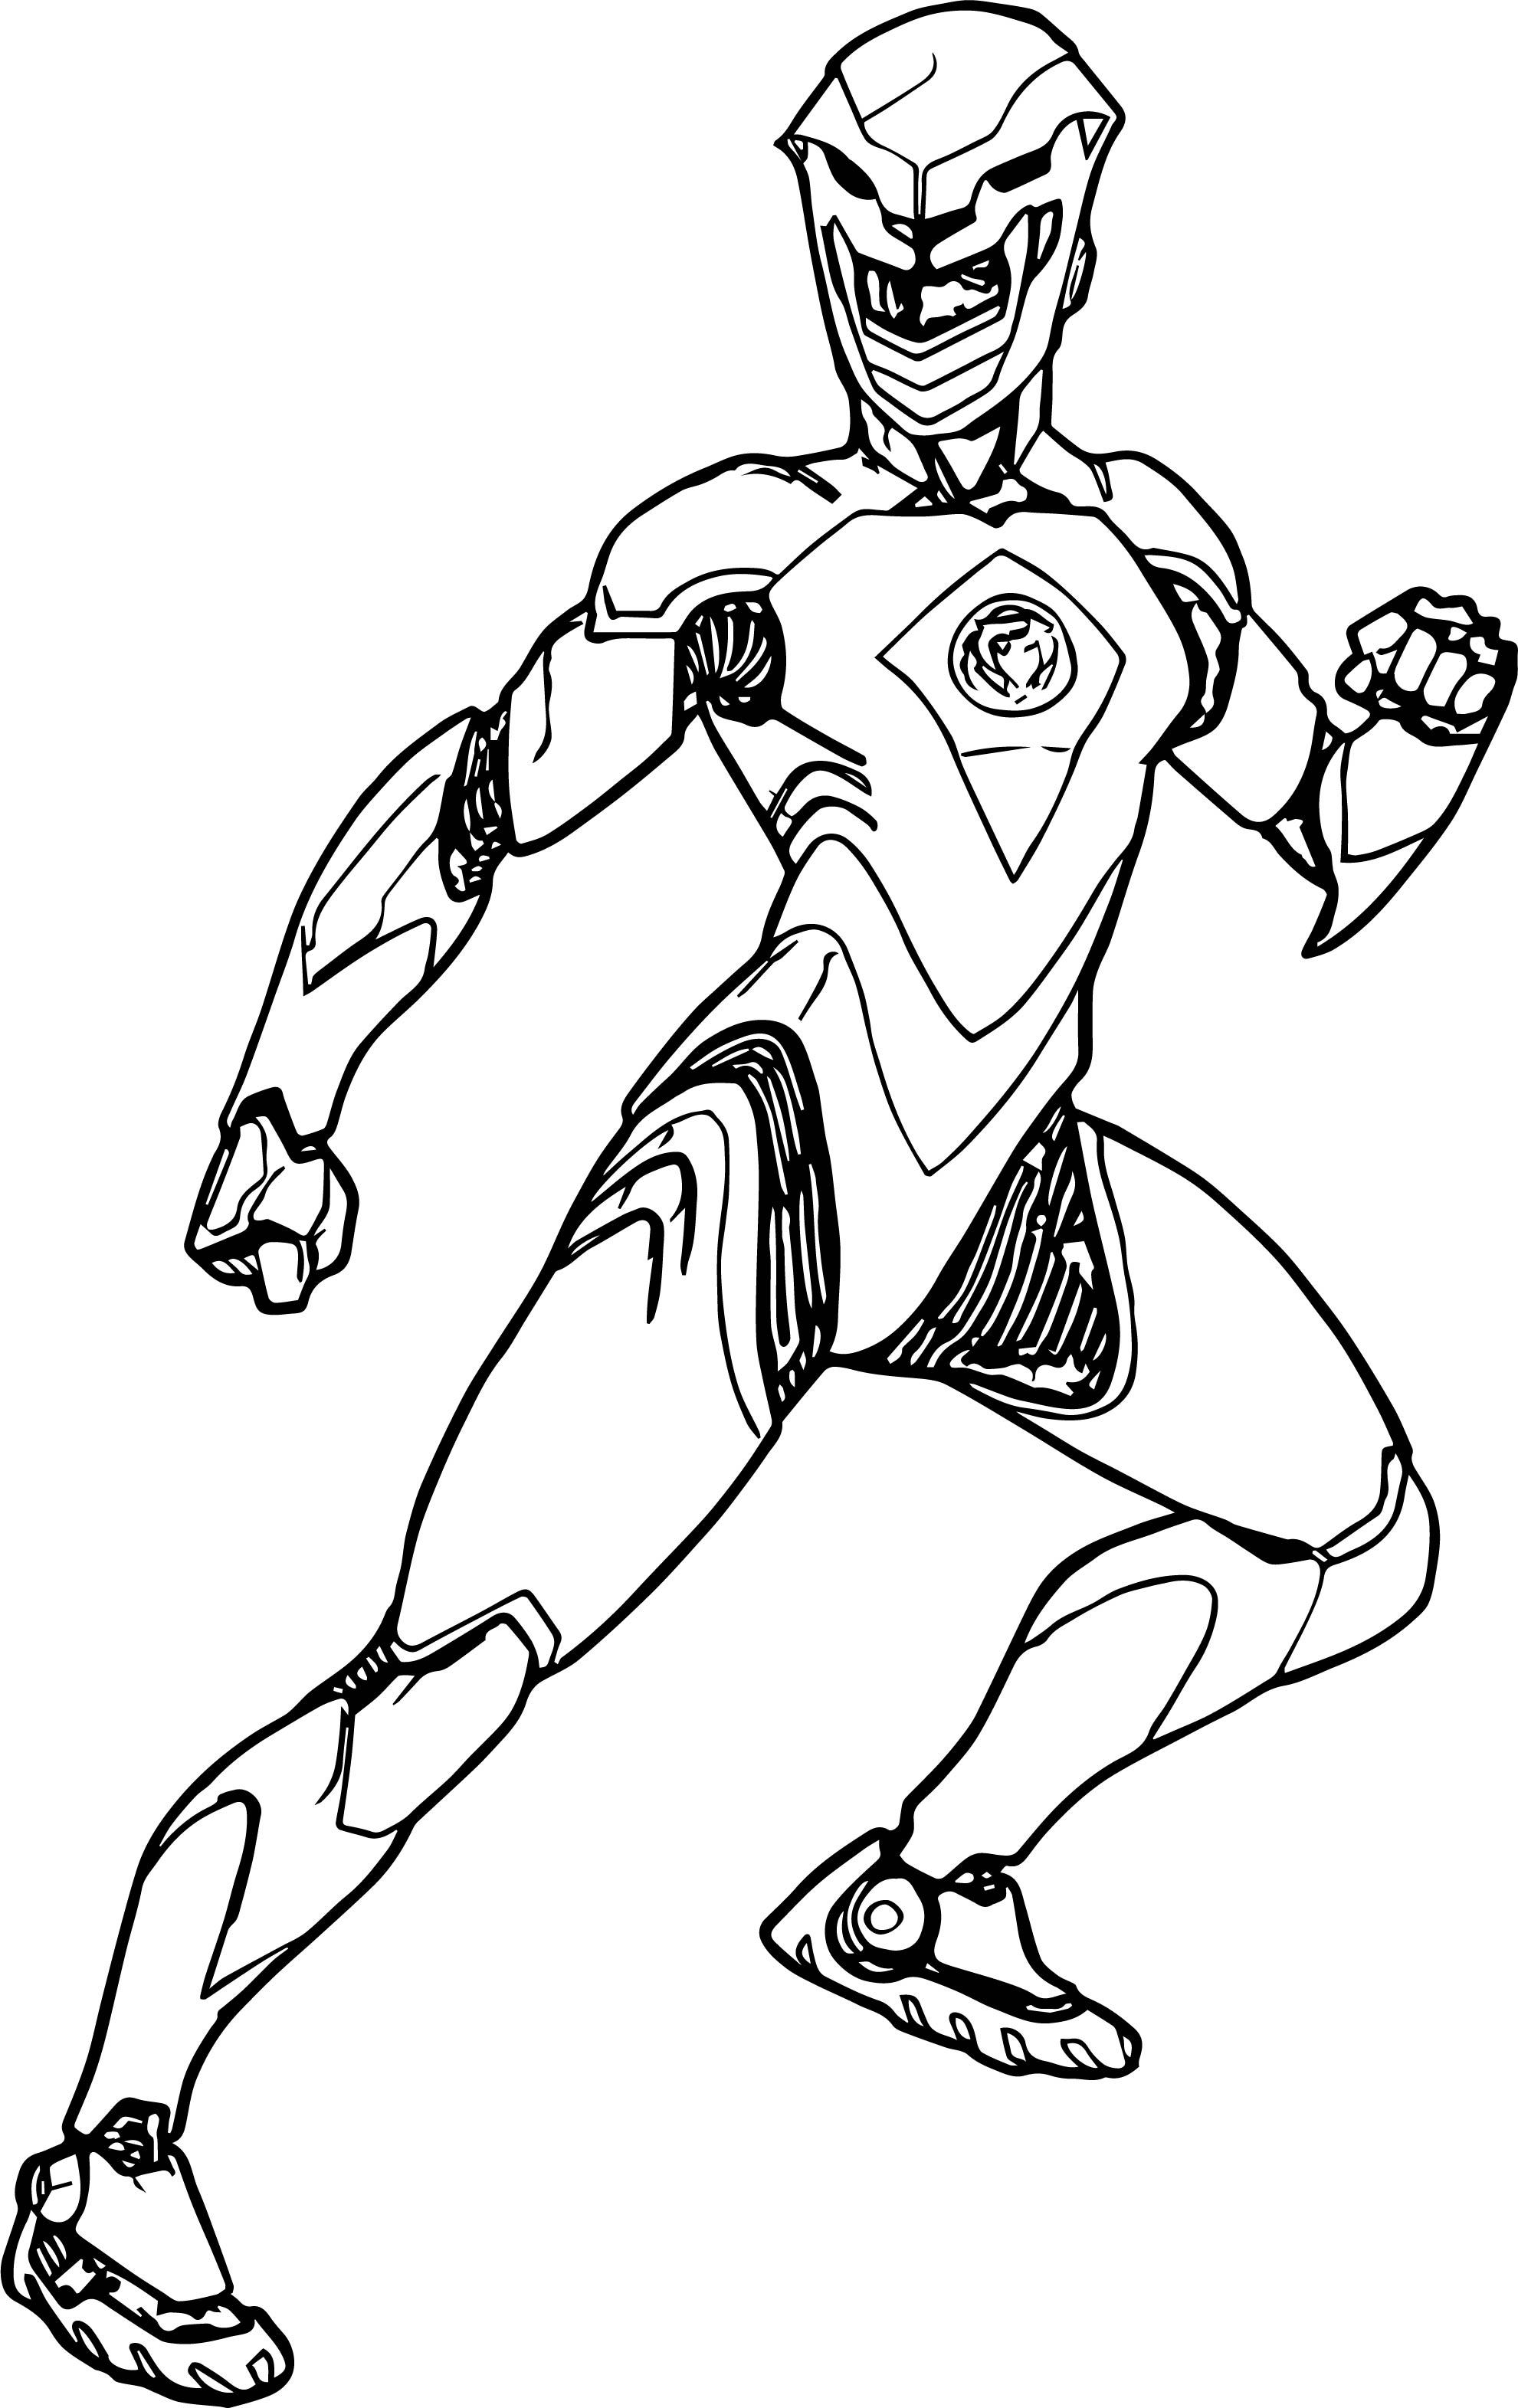 power ranger pictures to color top 35 free printable power rangers coloring pages online power pictures ranger color to